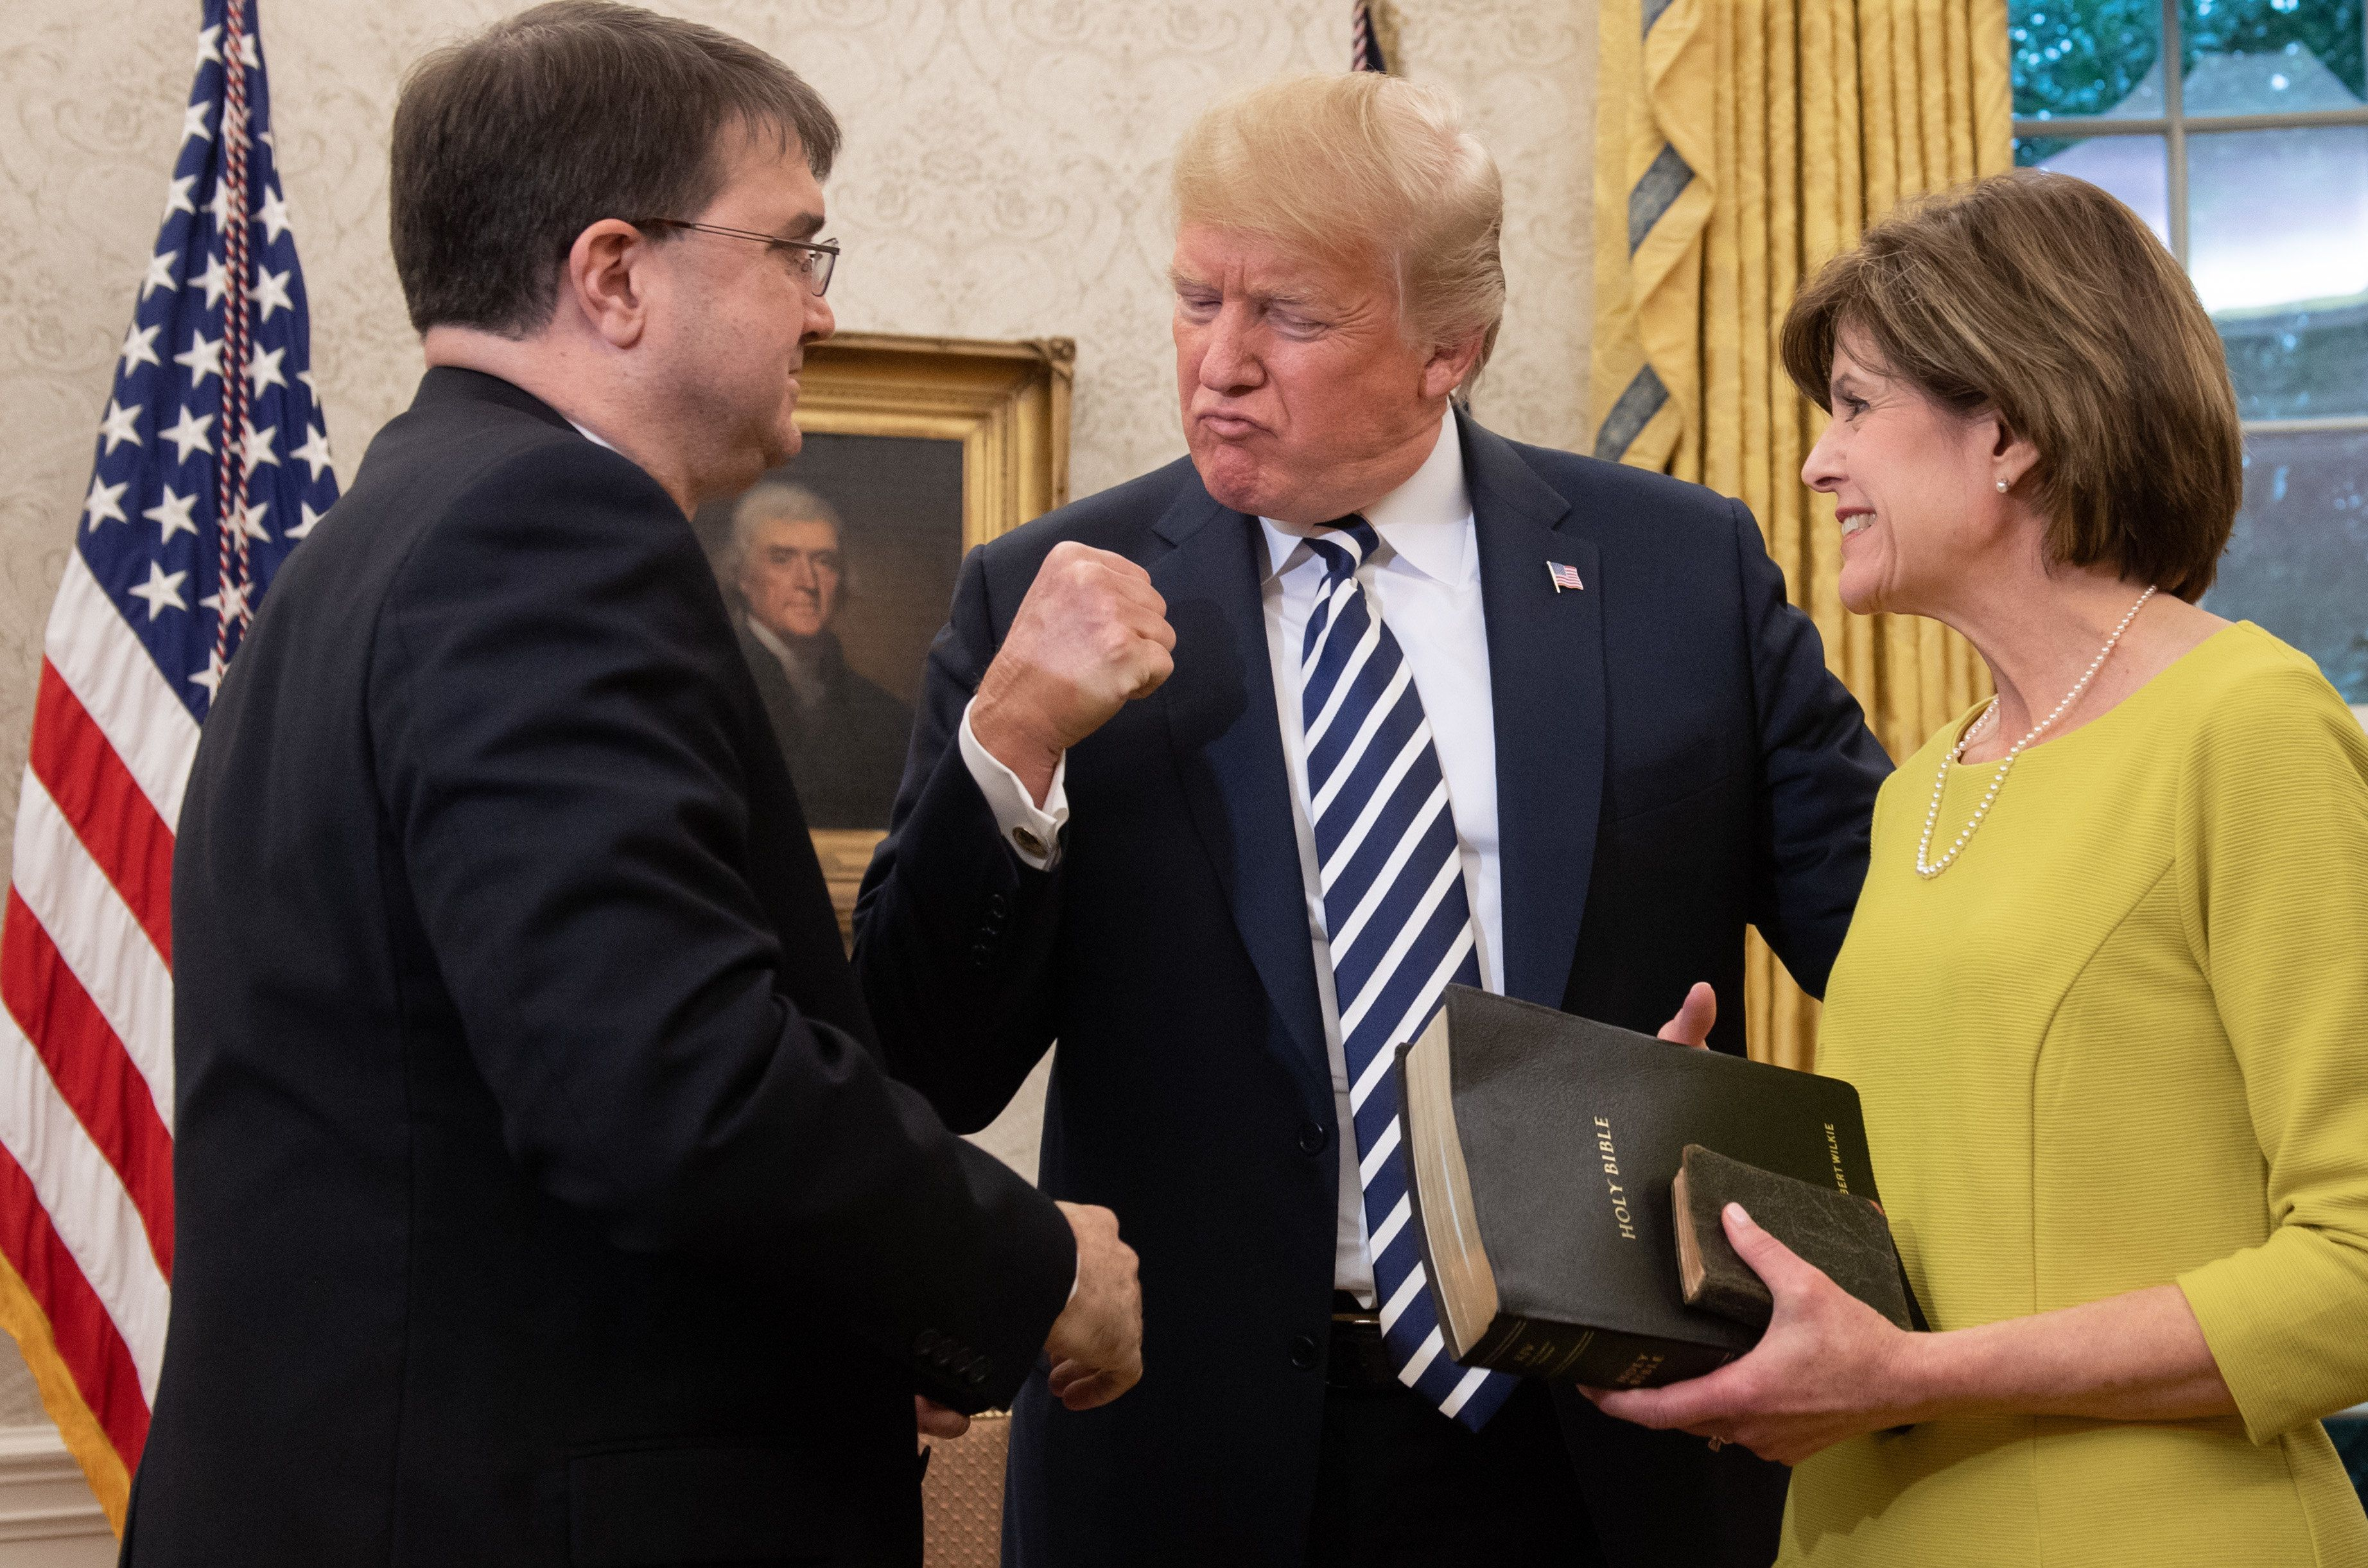 US President Donald Trump pumps his fist alongside Robert Wilkie (L) after he was sworn-in as Secretary of Veterans Affairs, alongside his wife Julia (R), in the Oval Office of the White House in Washington, DC, July 30, 2018. (Photo by SAUL LOEB / AFP)        (Photo credit should read SAUL LOEB/AFP/Getty Images)